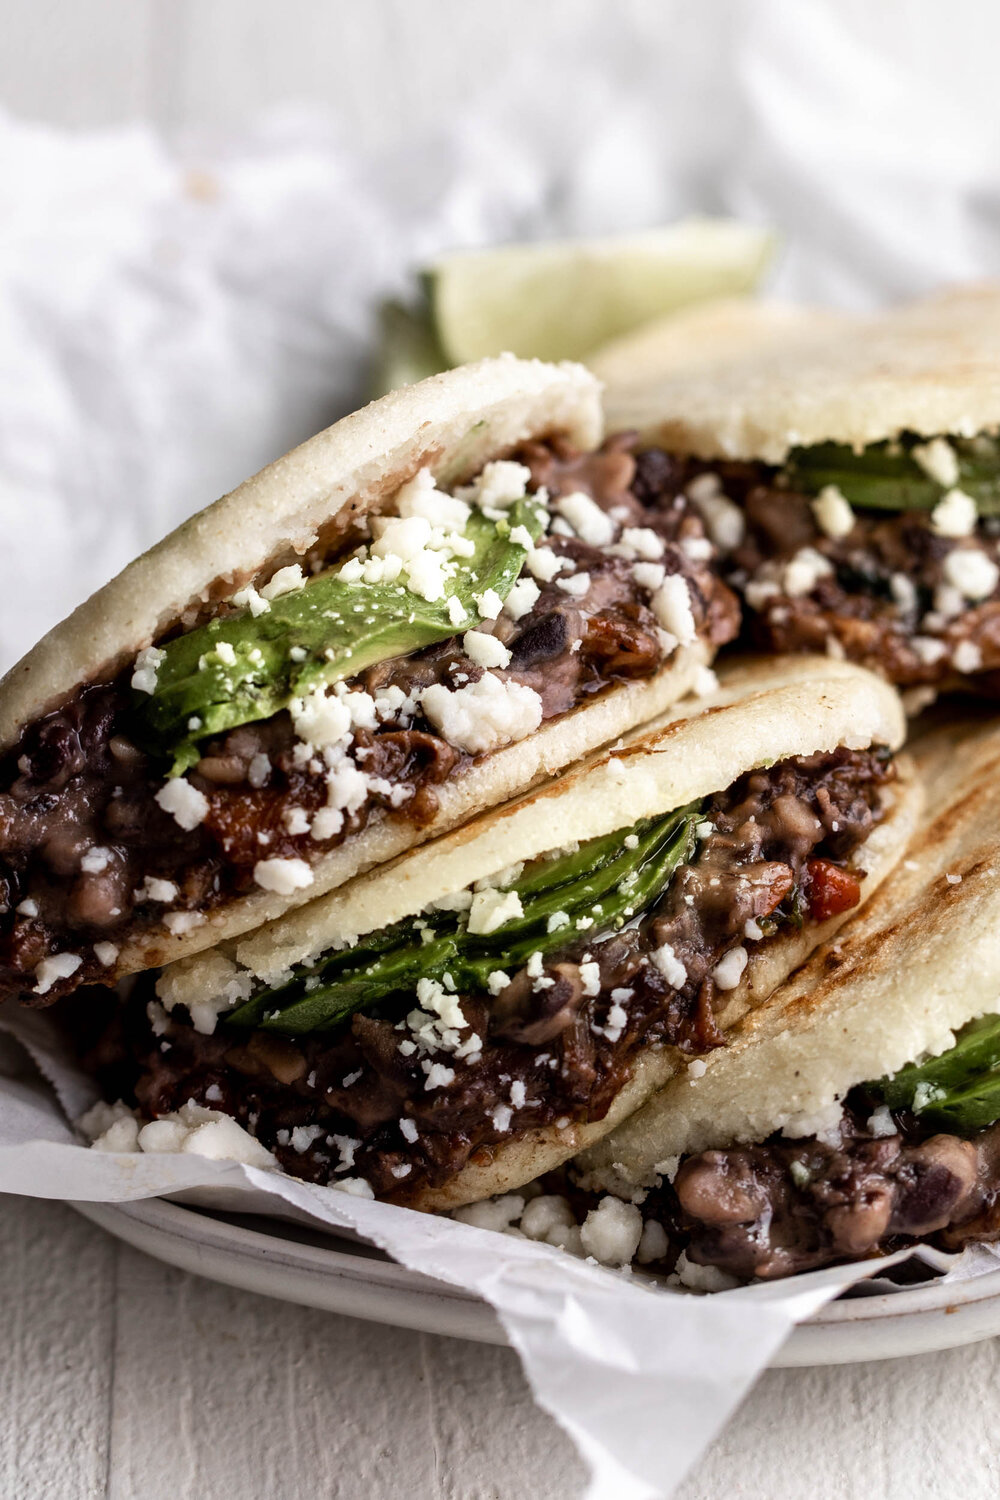 Braised Oxtail Arepas with avocado and black beans-21.jpg